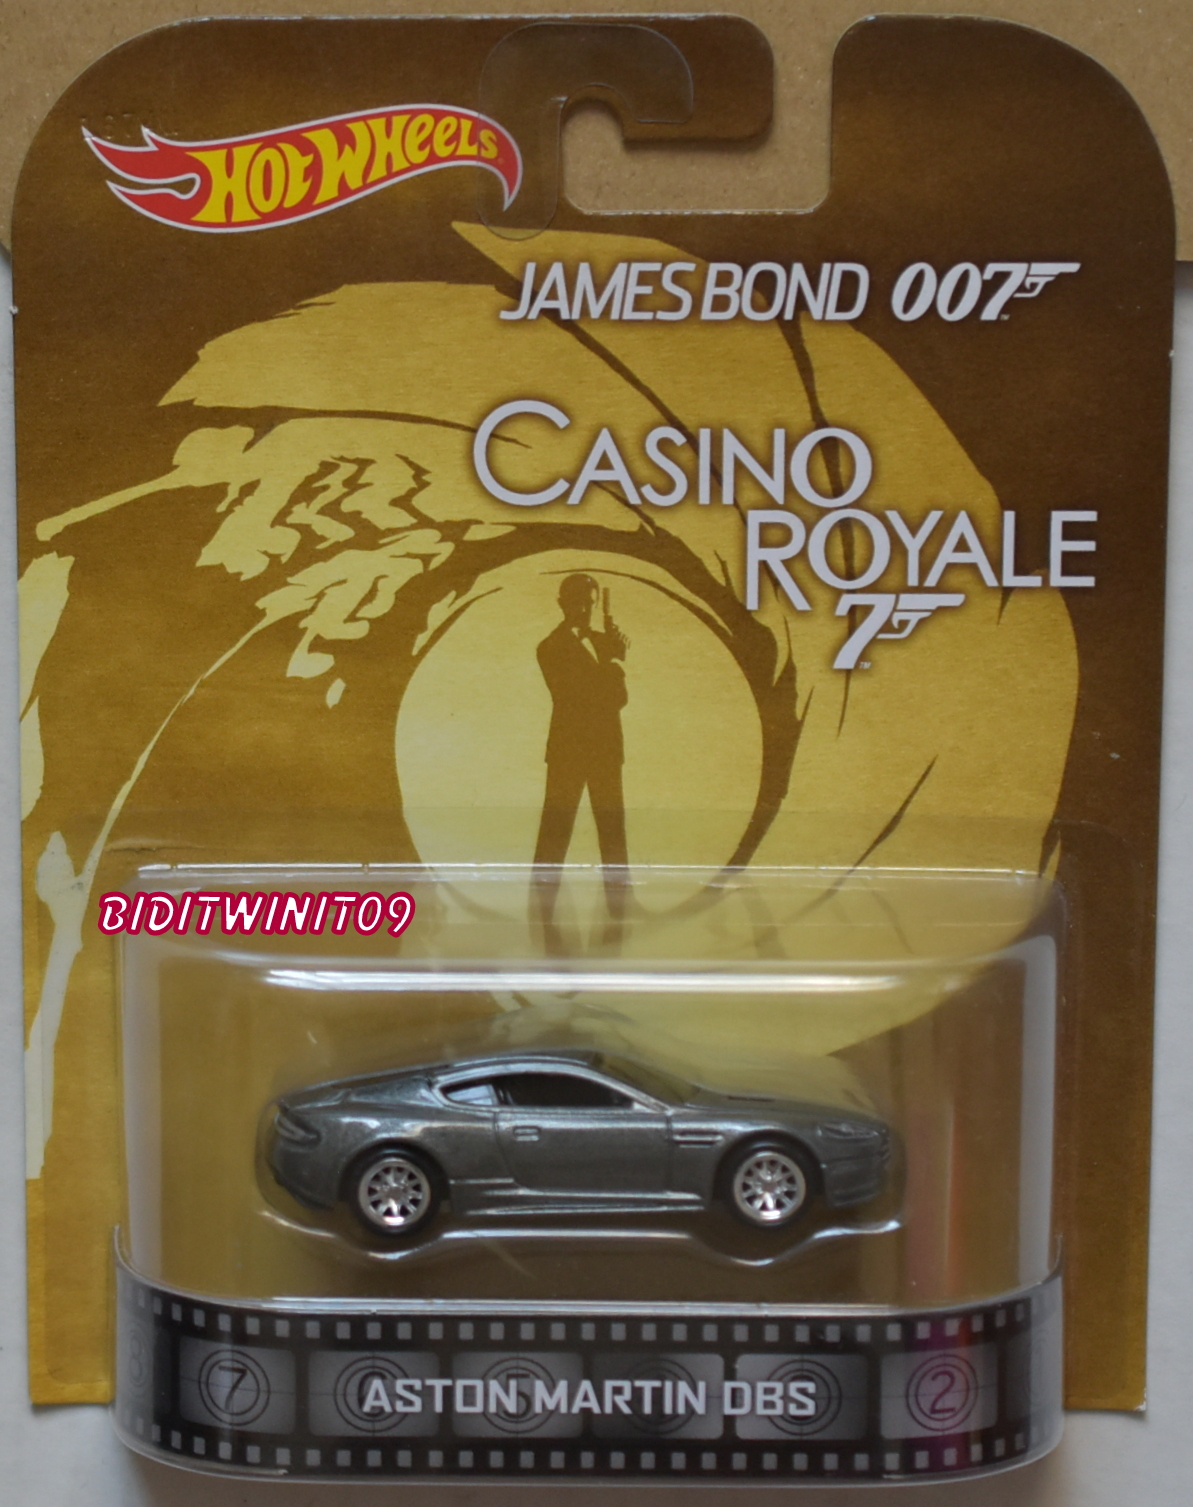 HOT WHEELS RETRO ENTERTAINMENT ASTON MARTIN DBS JAMES BOND 007 CASINO E+